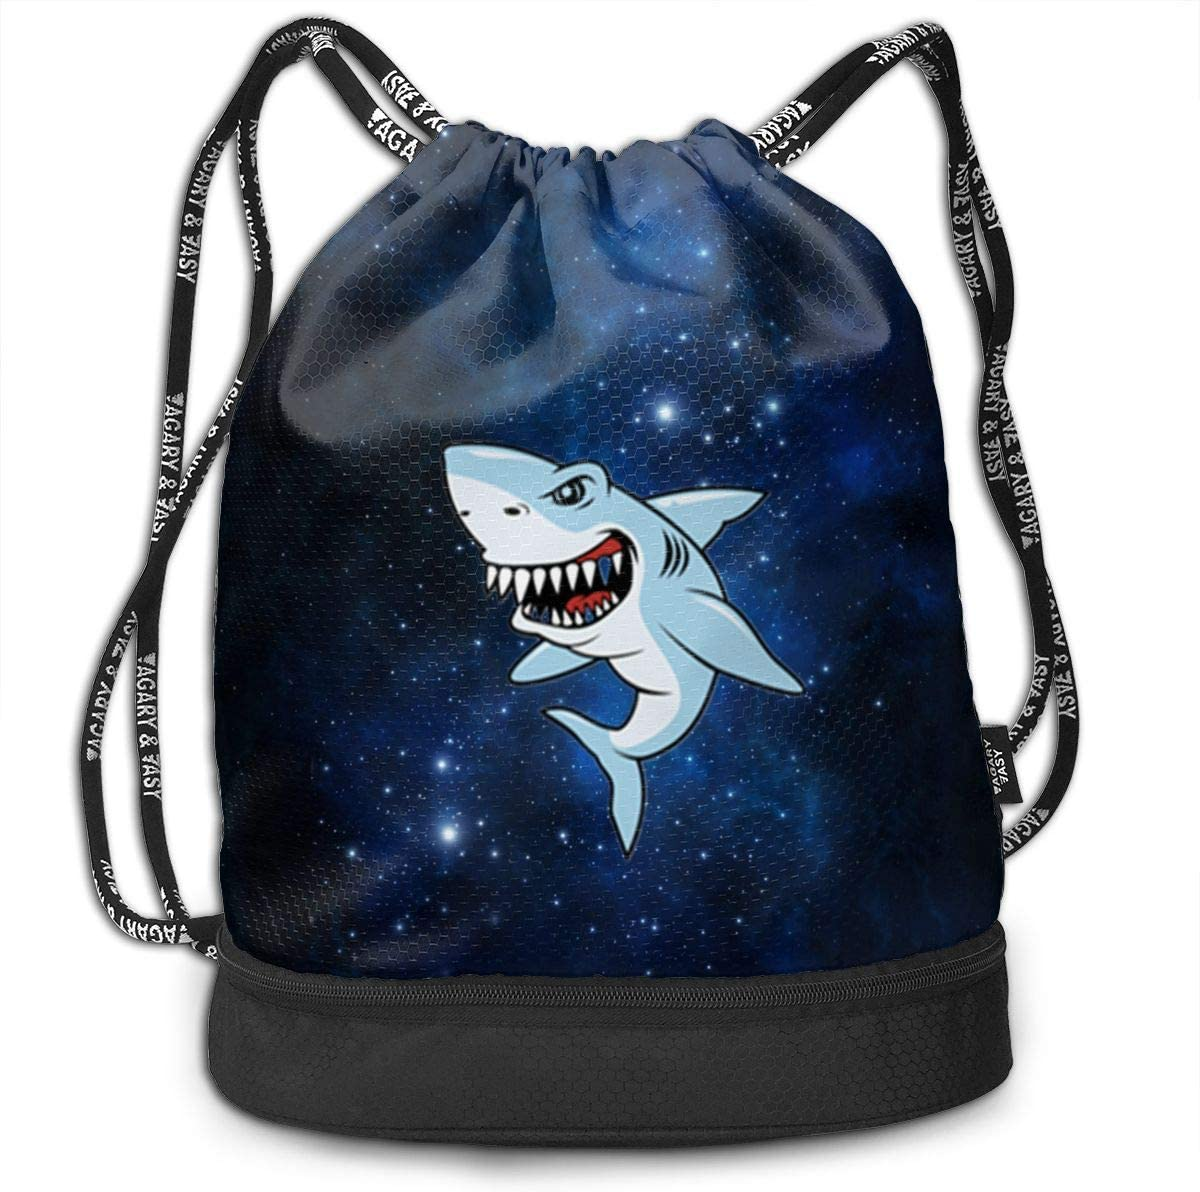 HUOPR5Q Shark-Illustration Drawstring Backpack Sport Gym Sack Shoulder Bulk Bag Dance Bag for School Travel